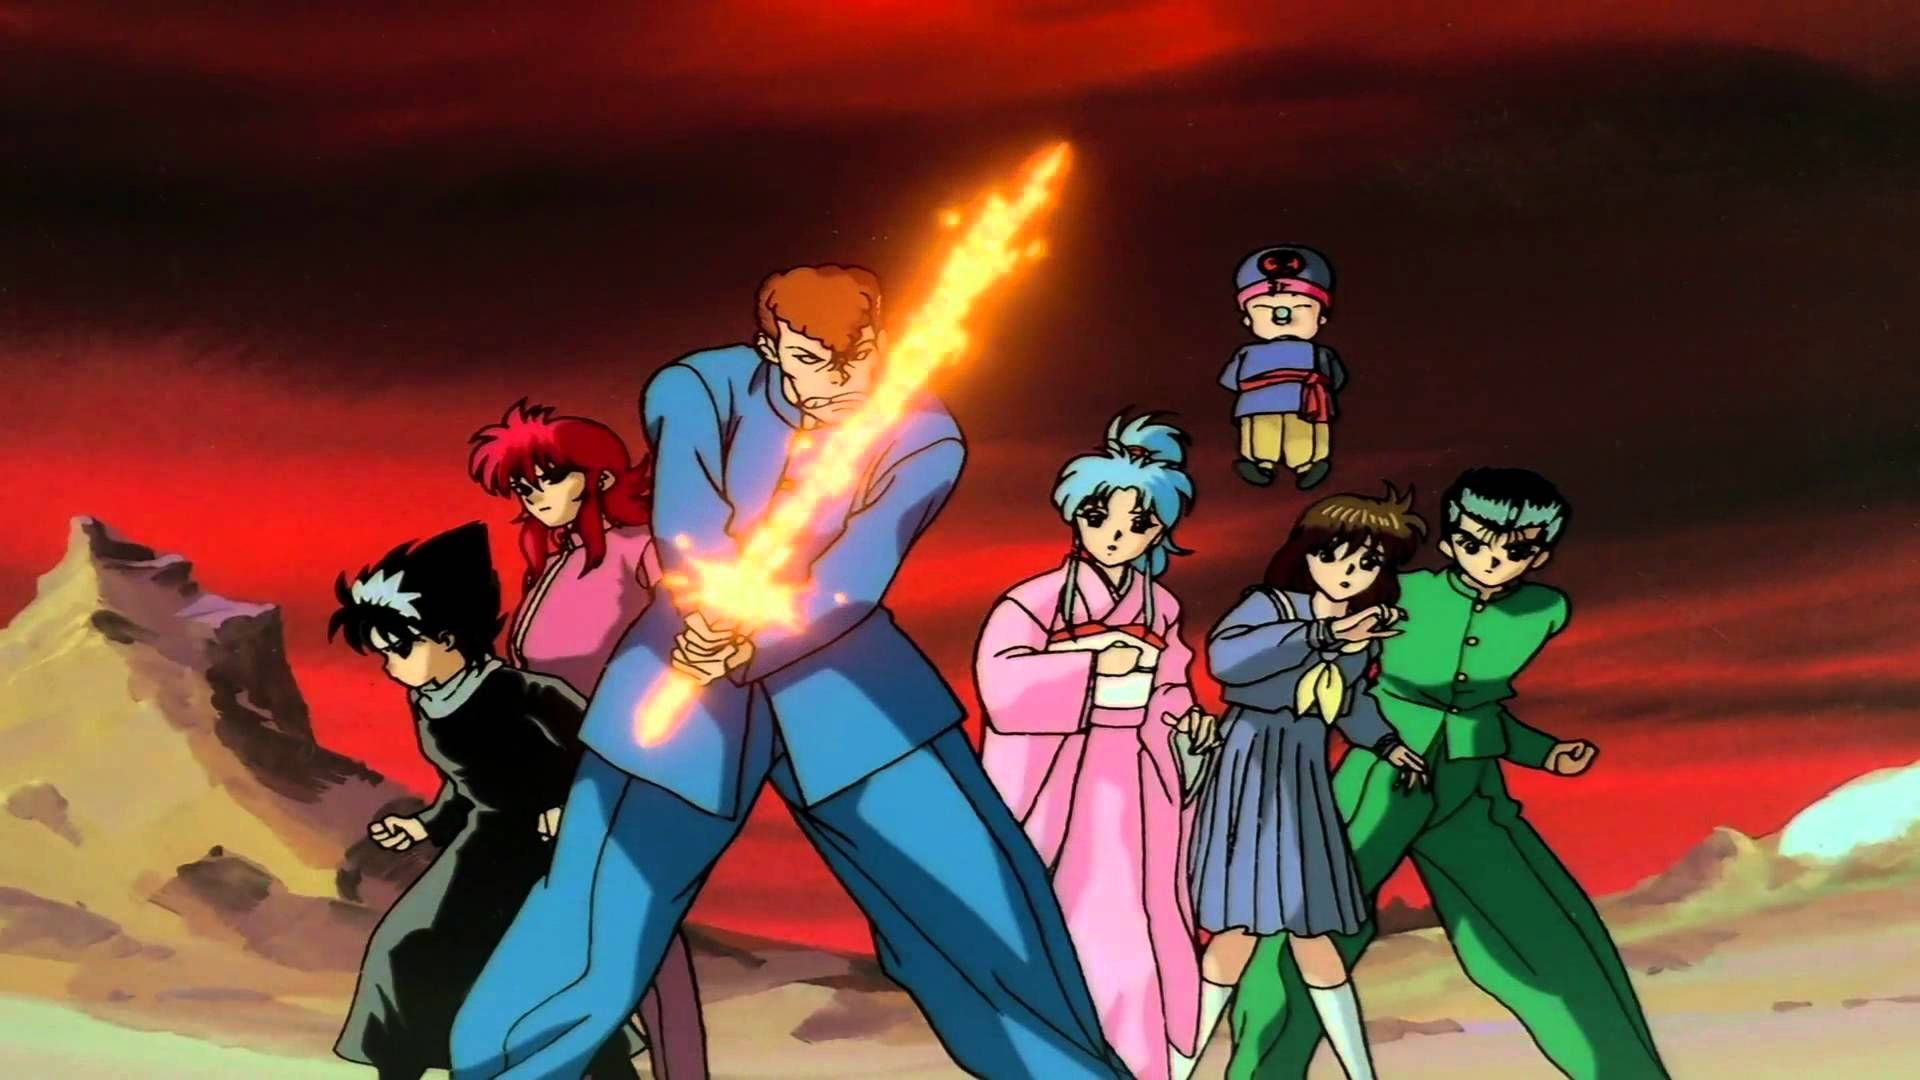 Yu Yu Hakusho Very Good Story One Of My Favorite Animes About